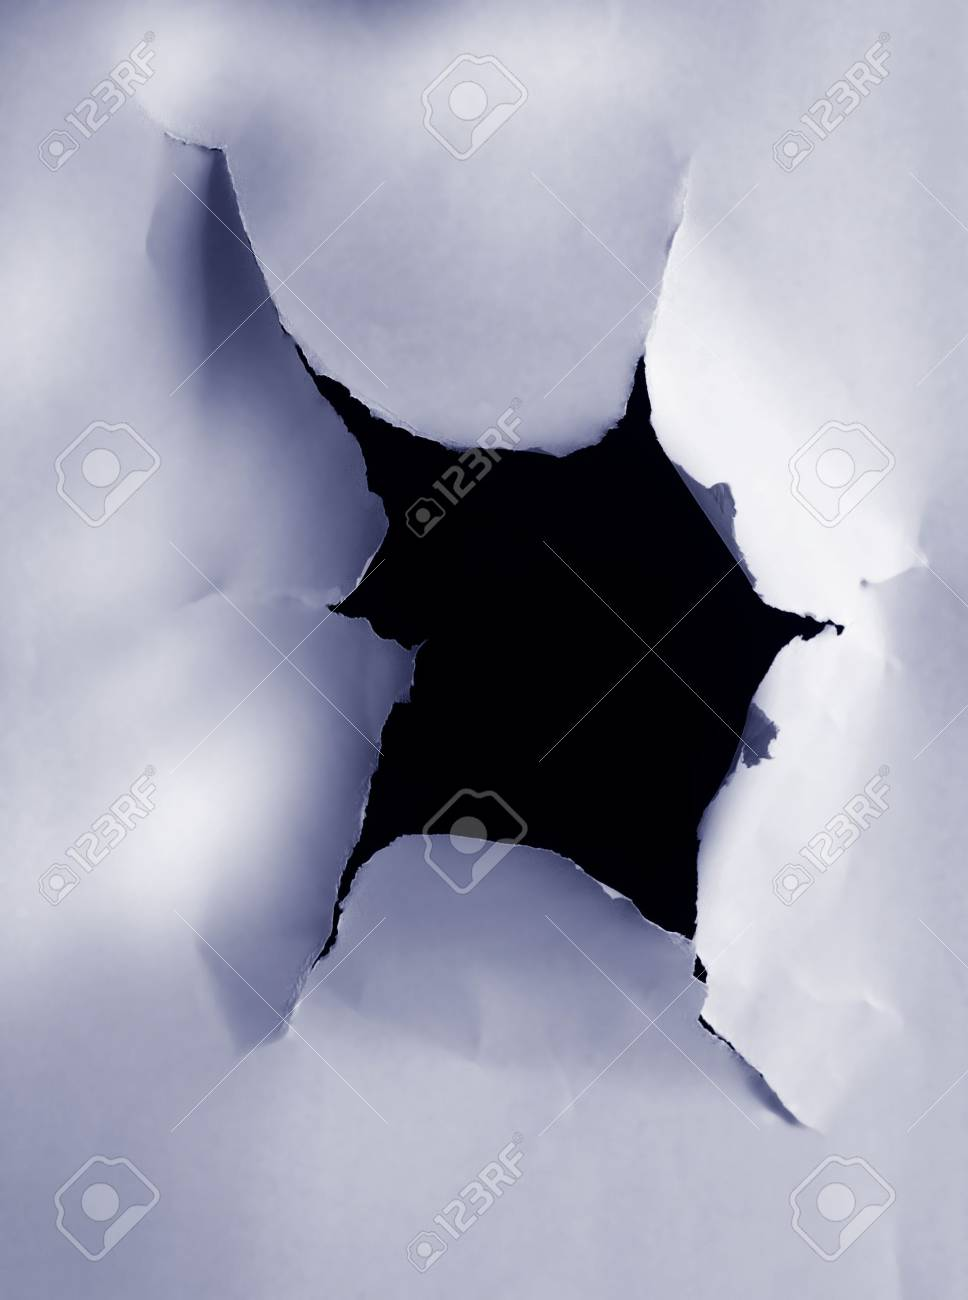 A hole torn in a peice of paper Stock Photo - 2147590